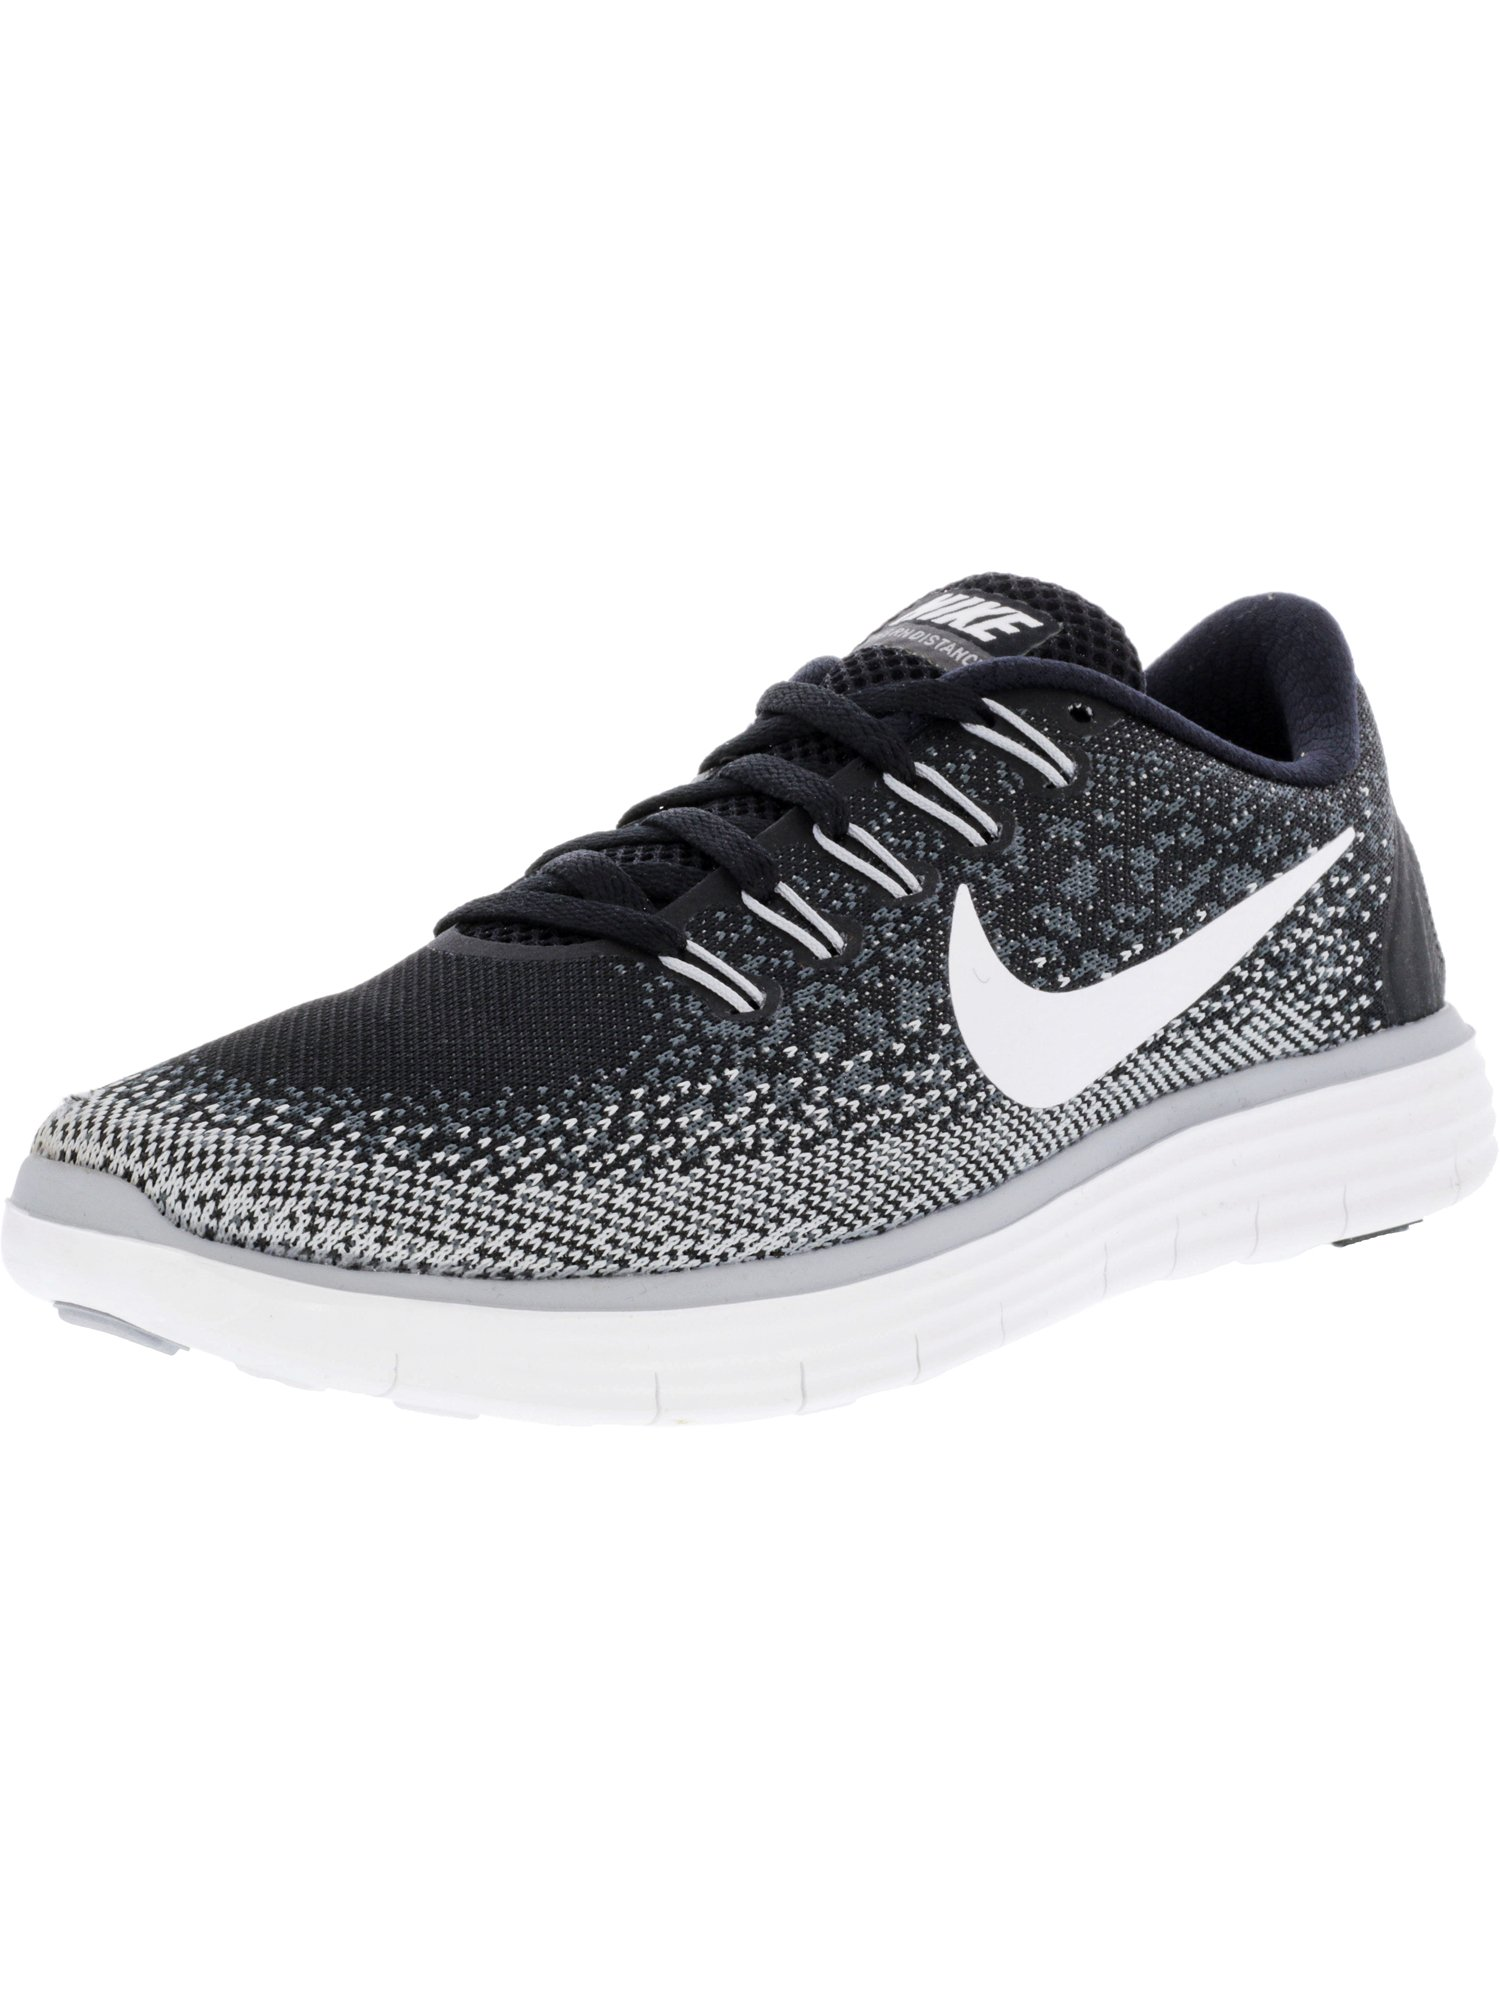 96f30f0186f09 Nike Women s Free Rn Distance Black   White Dark Grey Wolf Ankle-High Running  Shoe - 6M